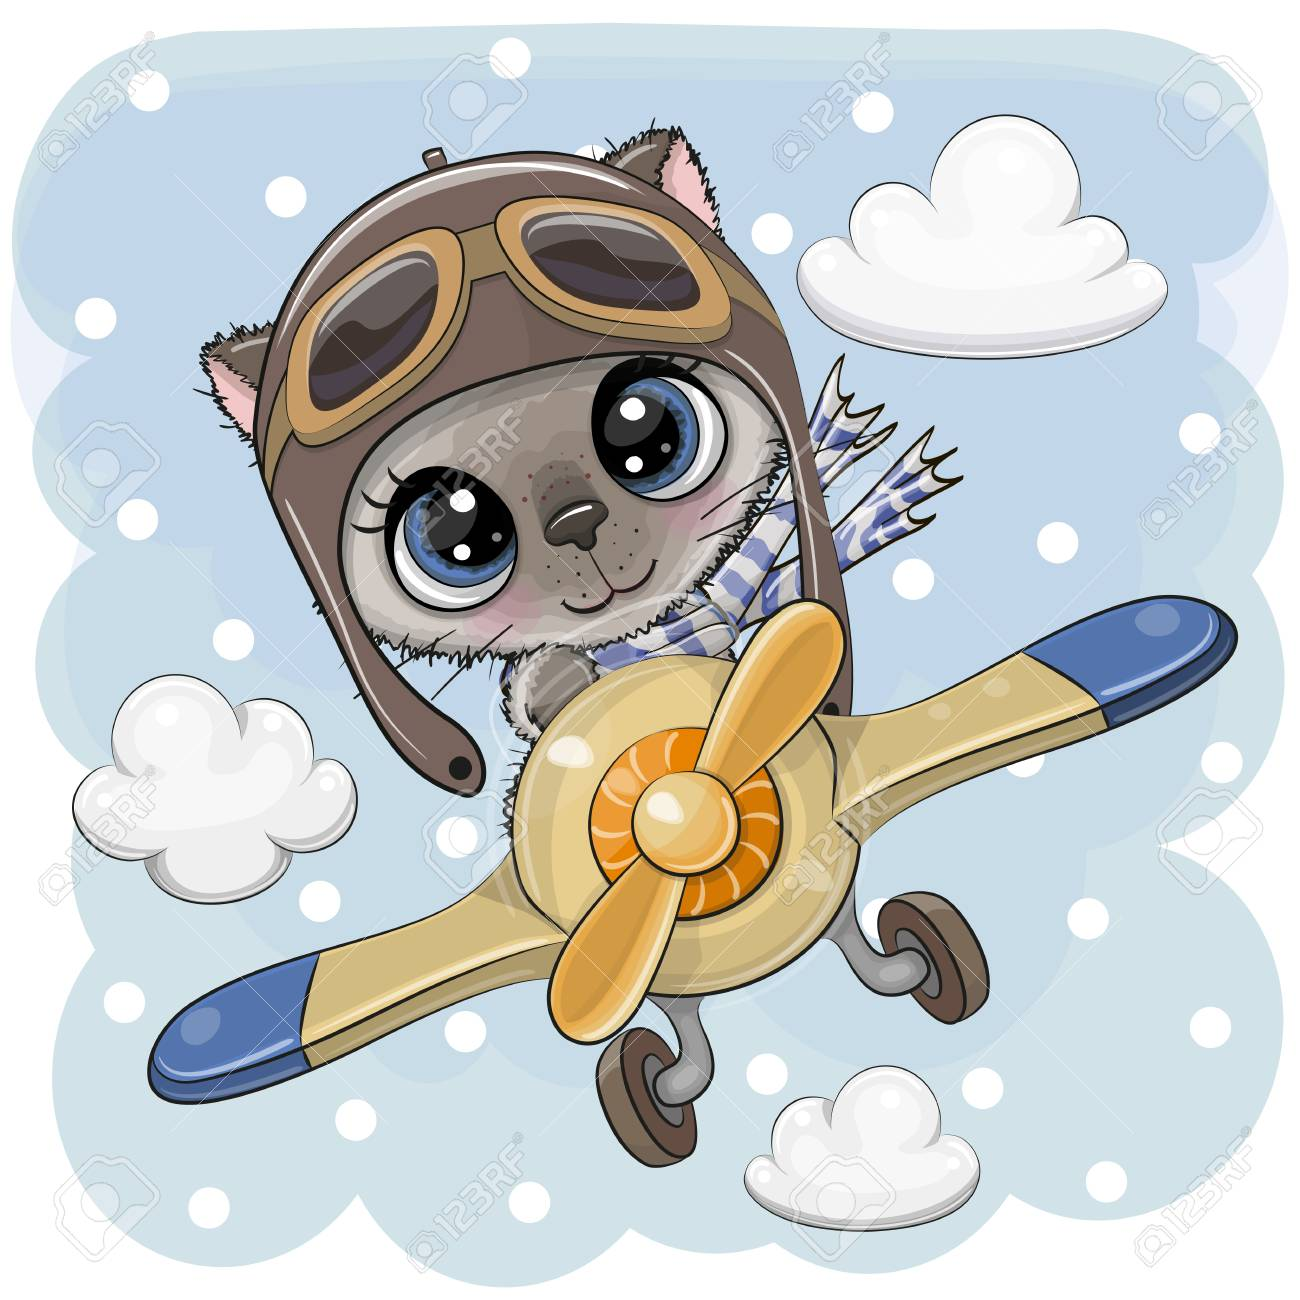 Cute Cartoon Kitten Is Flying On A Plane Royalty Free Cliparts Vectors And Stock Illustration Image 119930238